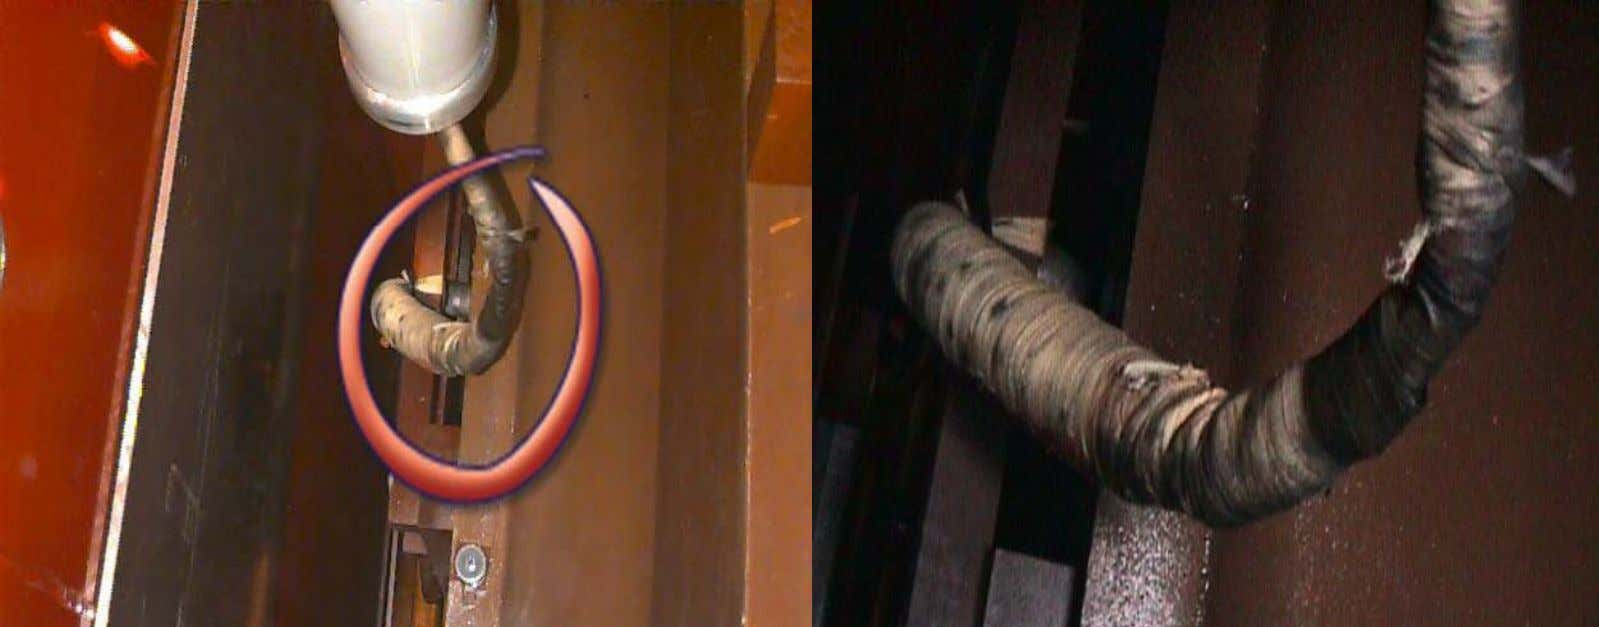 138 KV BUSHING ON PHASE B (PRIMARY) TERMINAL LEAD WAS DEFECTED.